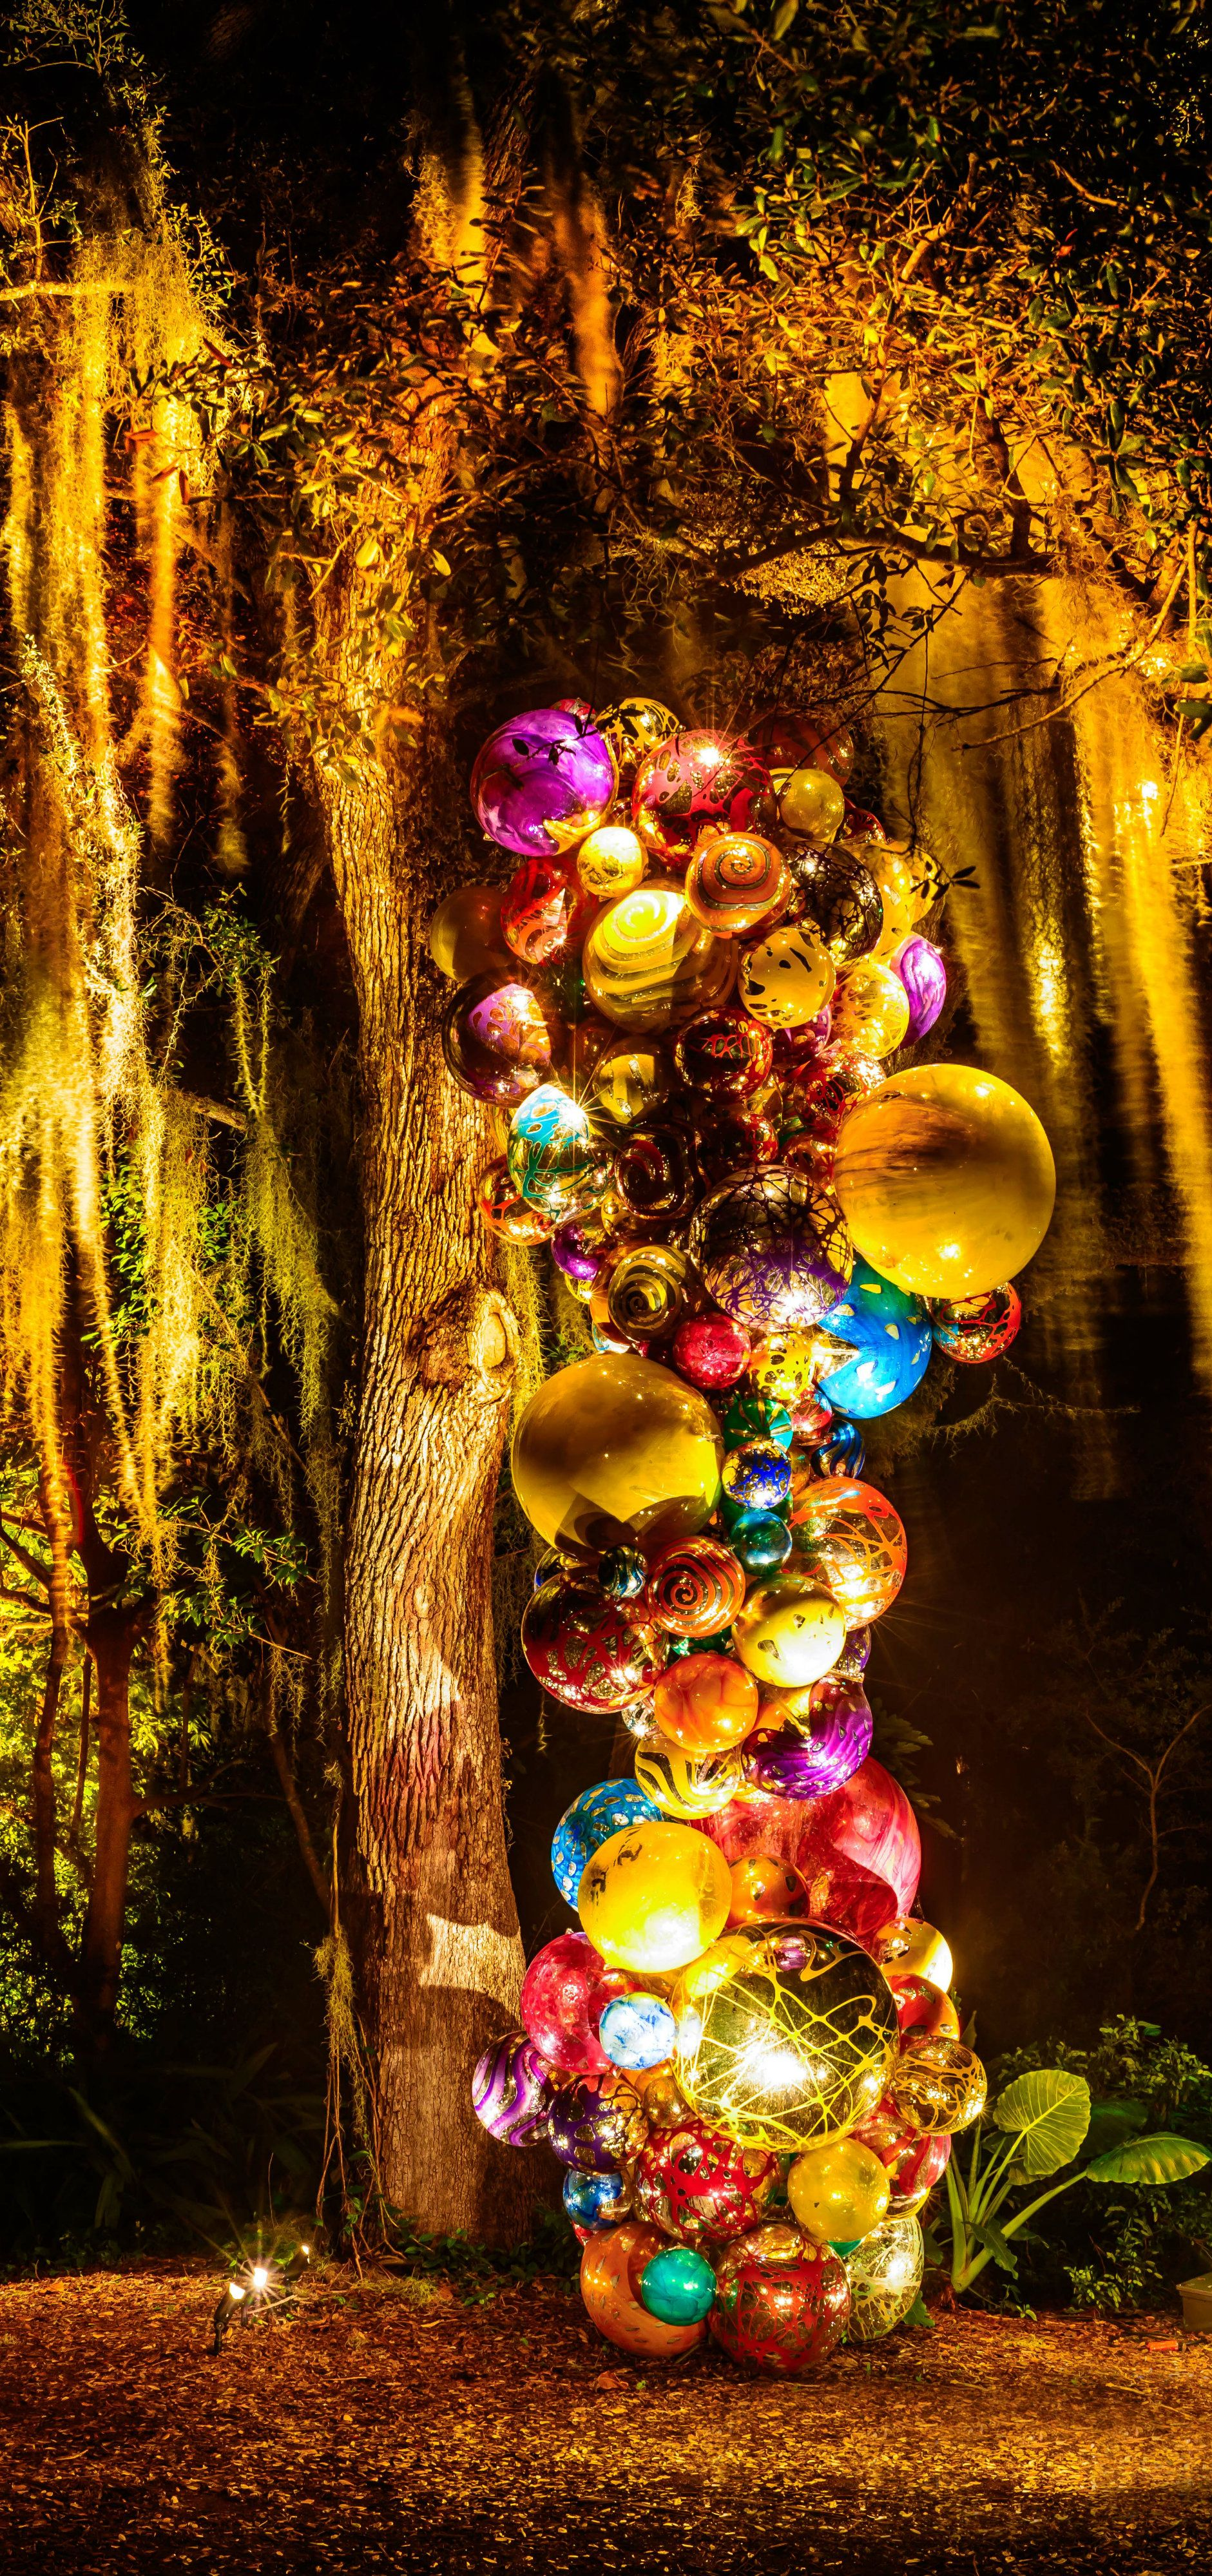 Fairchild Tropical Garden, Miami Chihuly at night | Chihuly glass ...